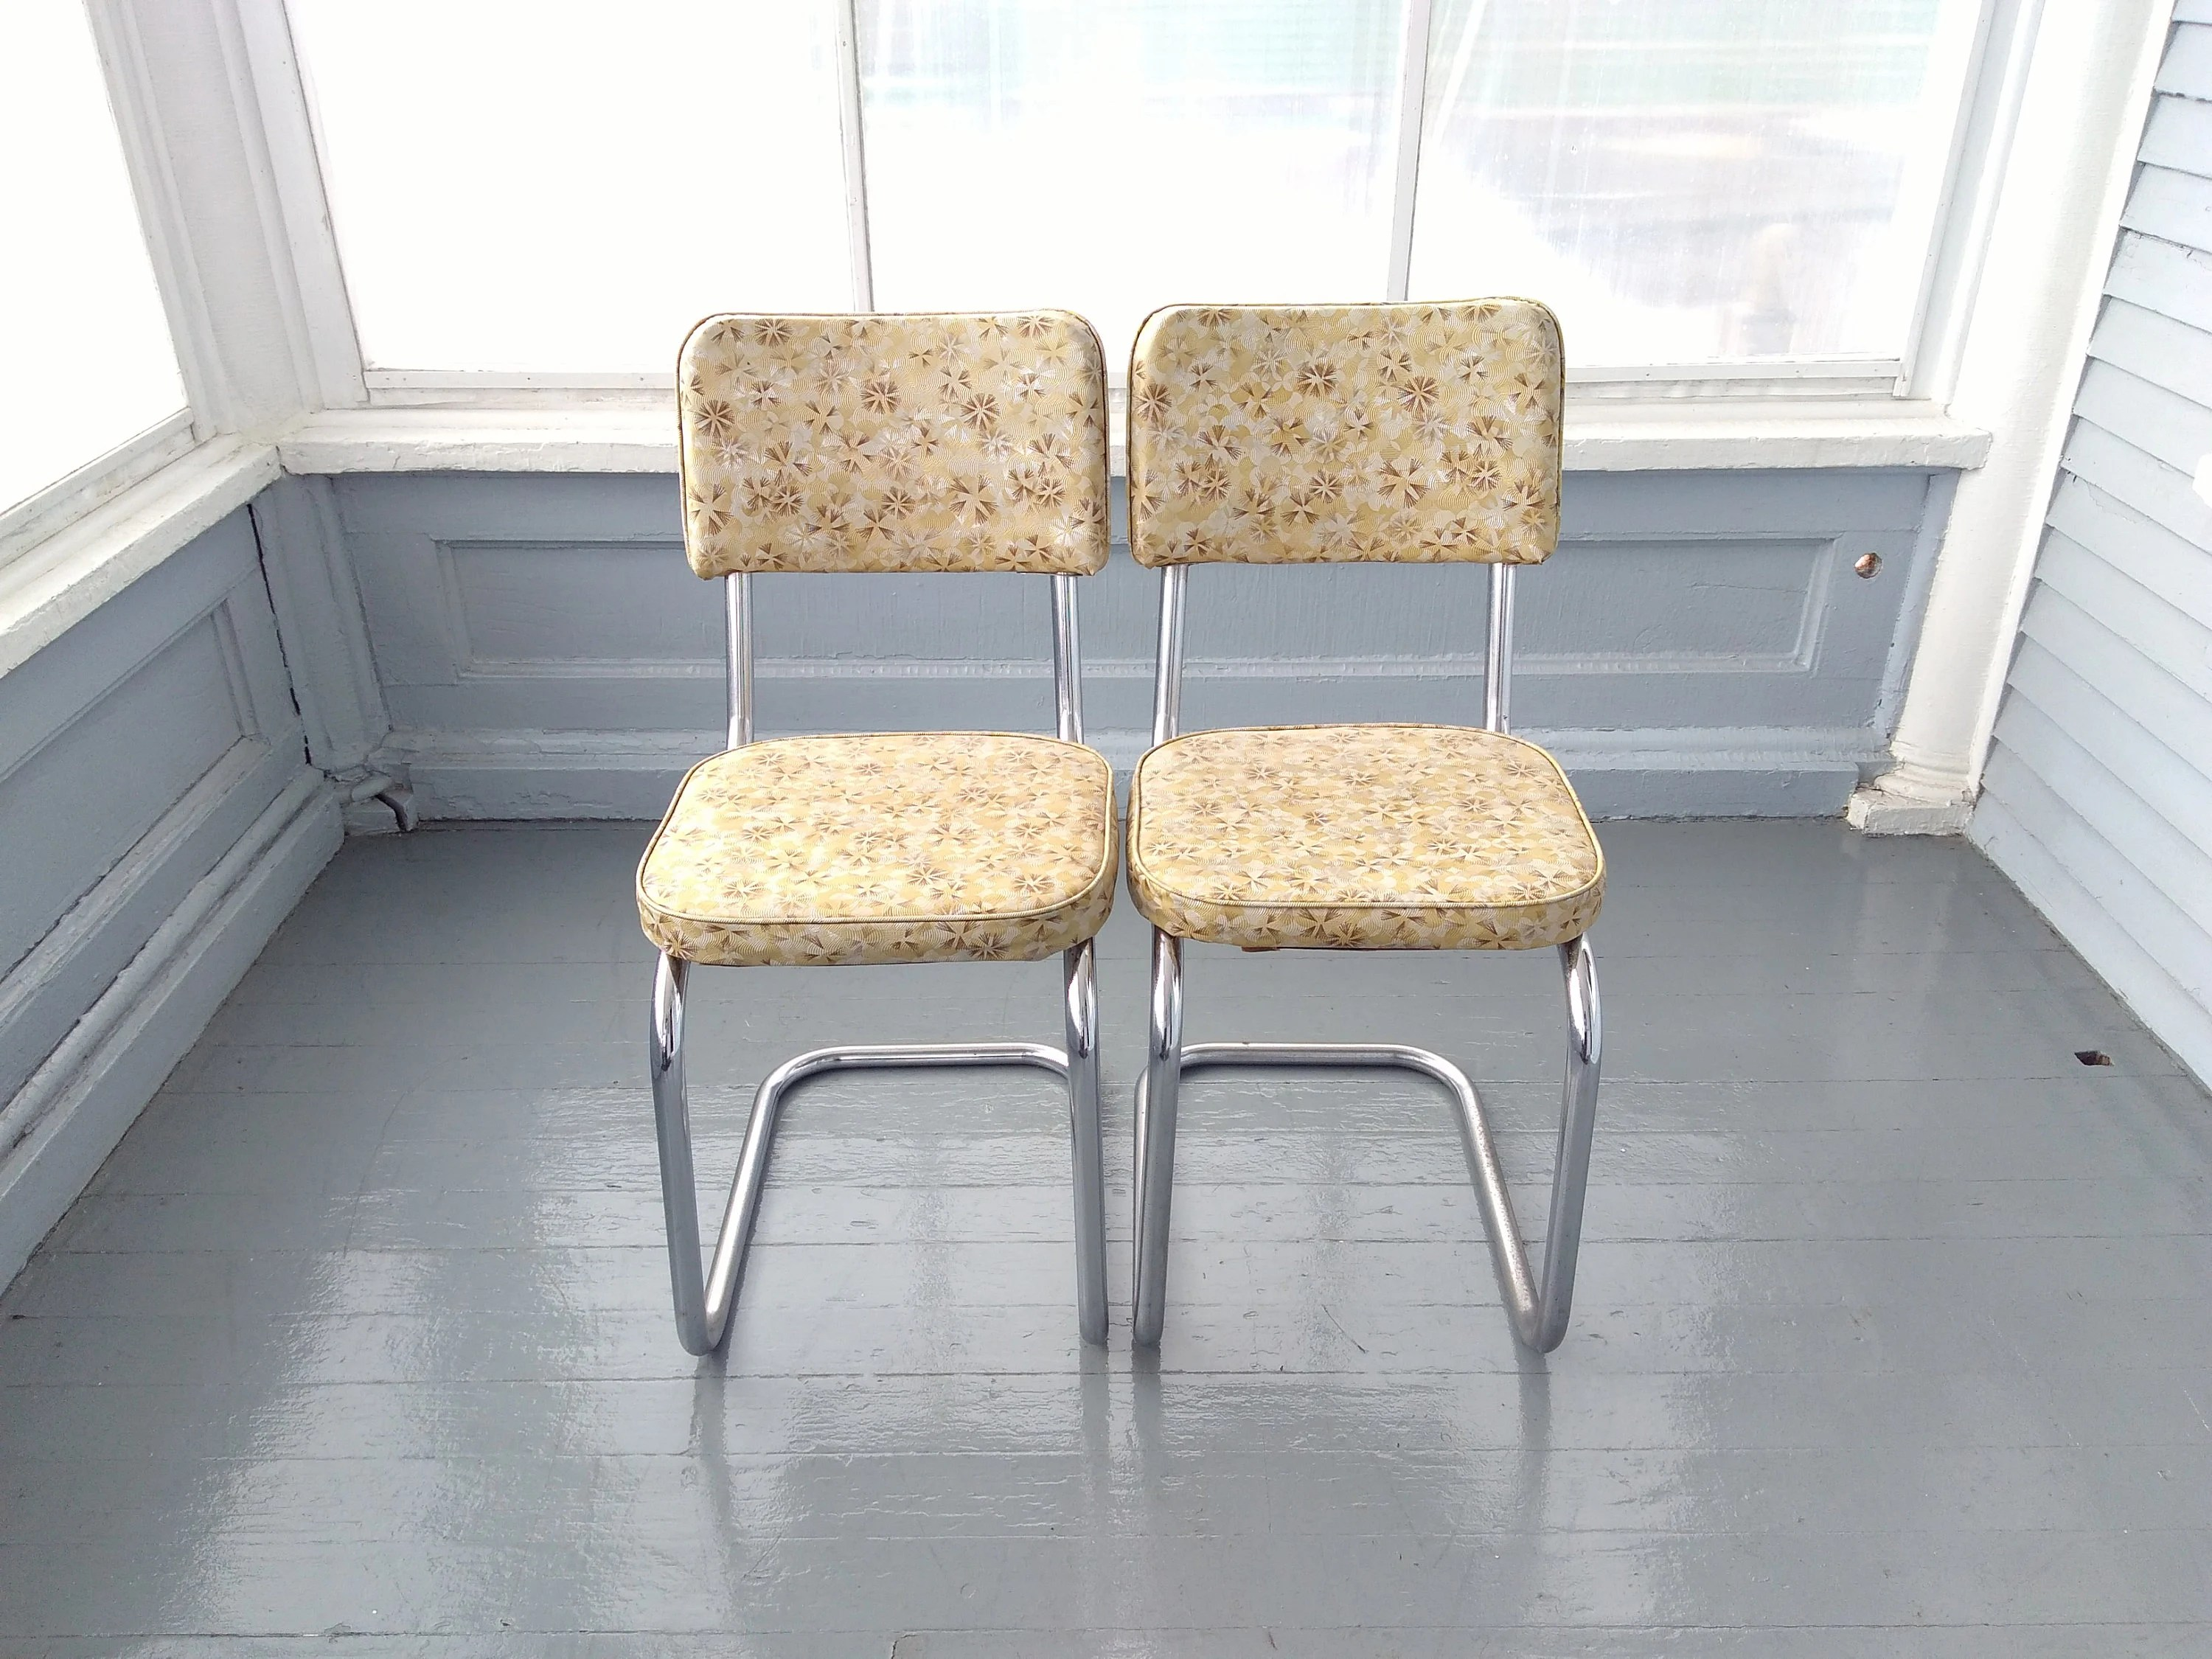 Vintage Chairs Dinette Chairs Retro 50s Metal Vinyl Chrome Kitchen Chairs Metal Chairs Vinyl Chairs Yellow Rhymeswithdaughter